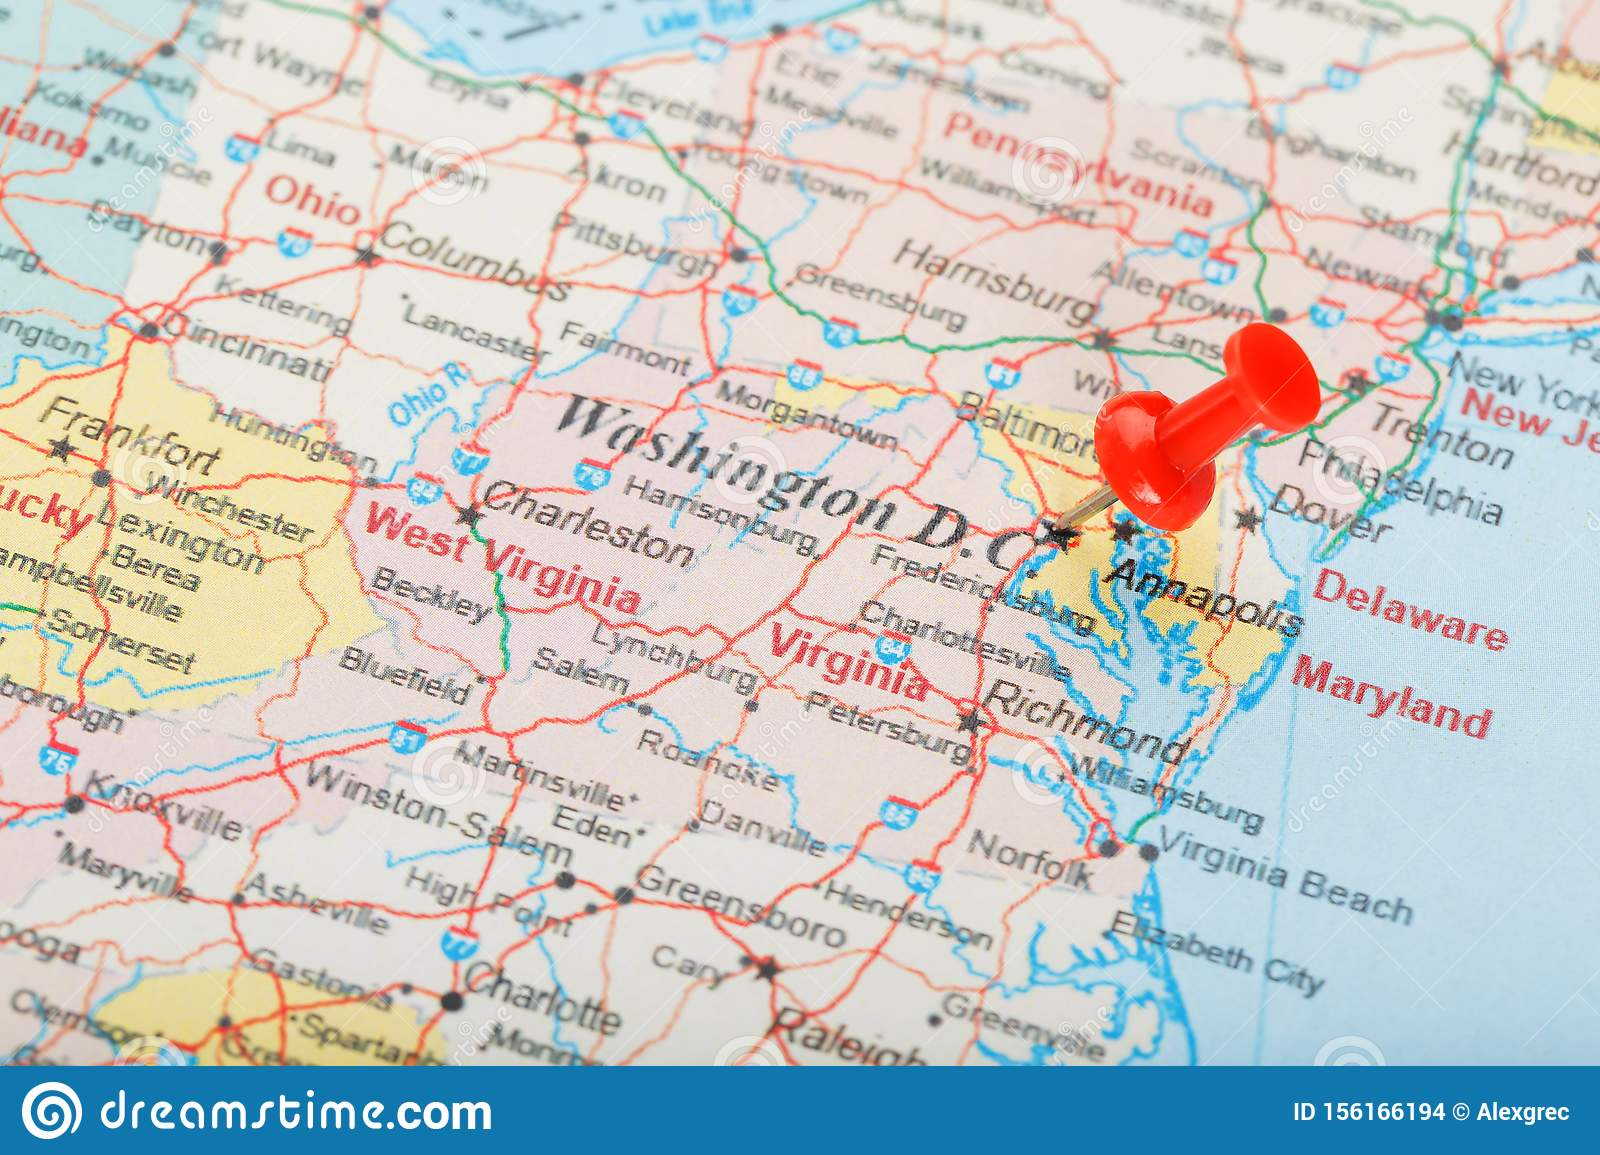 Proposed state of washington dc this map was created for planning purposes from a variety of sources. Red Clerical Needle On The Map Of Usa South Washington Dc And The Capital Of Richmond Close Up Map Of Dc With Red Tack Stock Photo Image Of Book Road 156166194